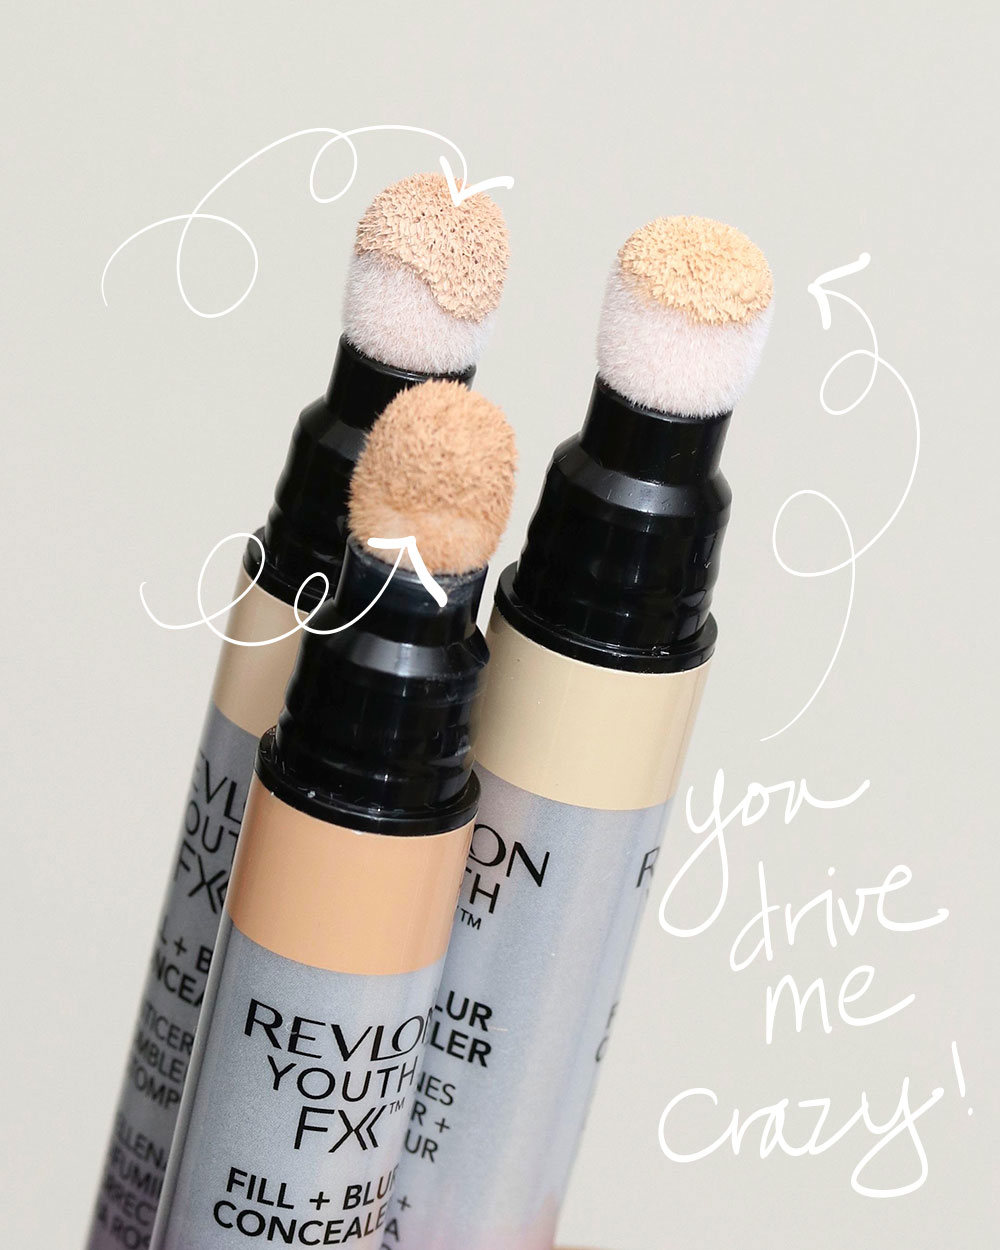 revlon youth fx fill blur concealer swatches